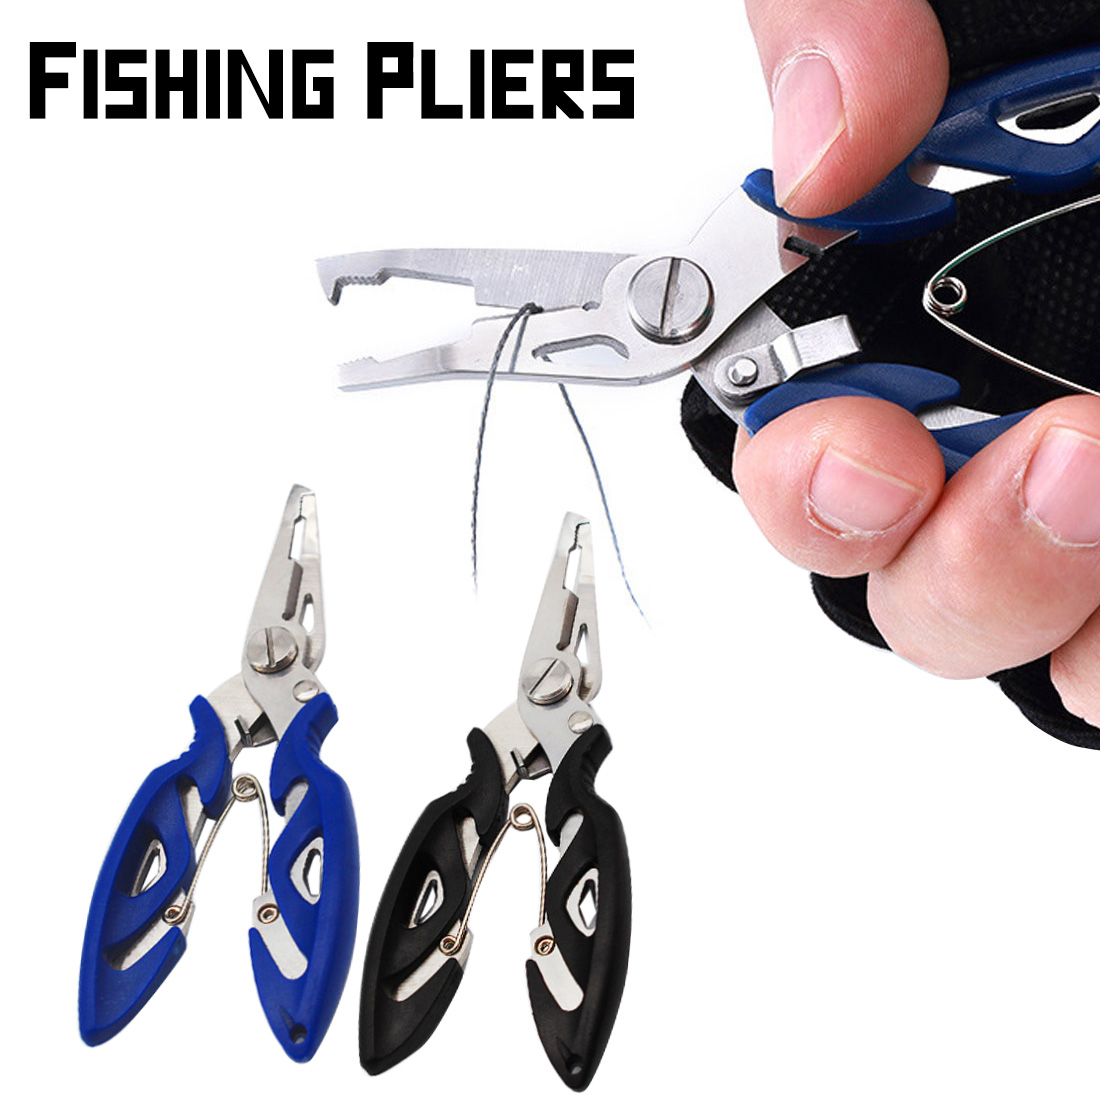 2019 New 1PC Durable Portable Multifunctional Stainless Steel Fishing Pliers Split Ring Scissors Wire Line Cutter Hook Removers